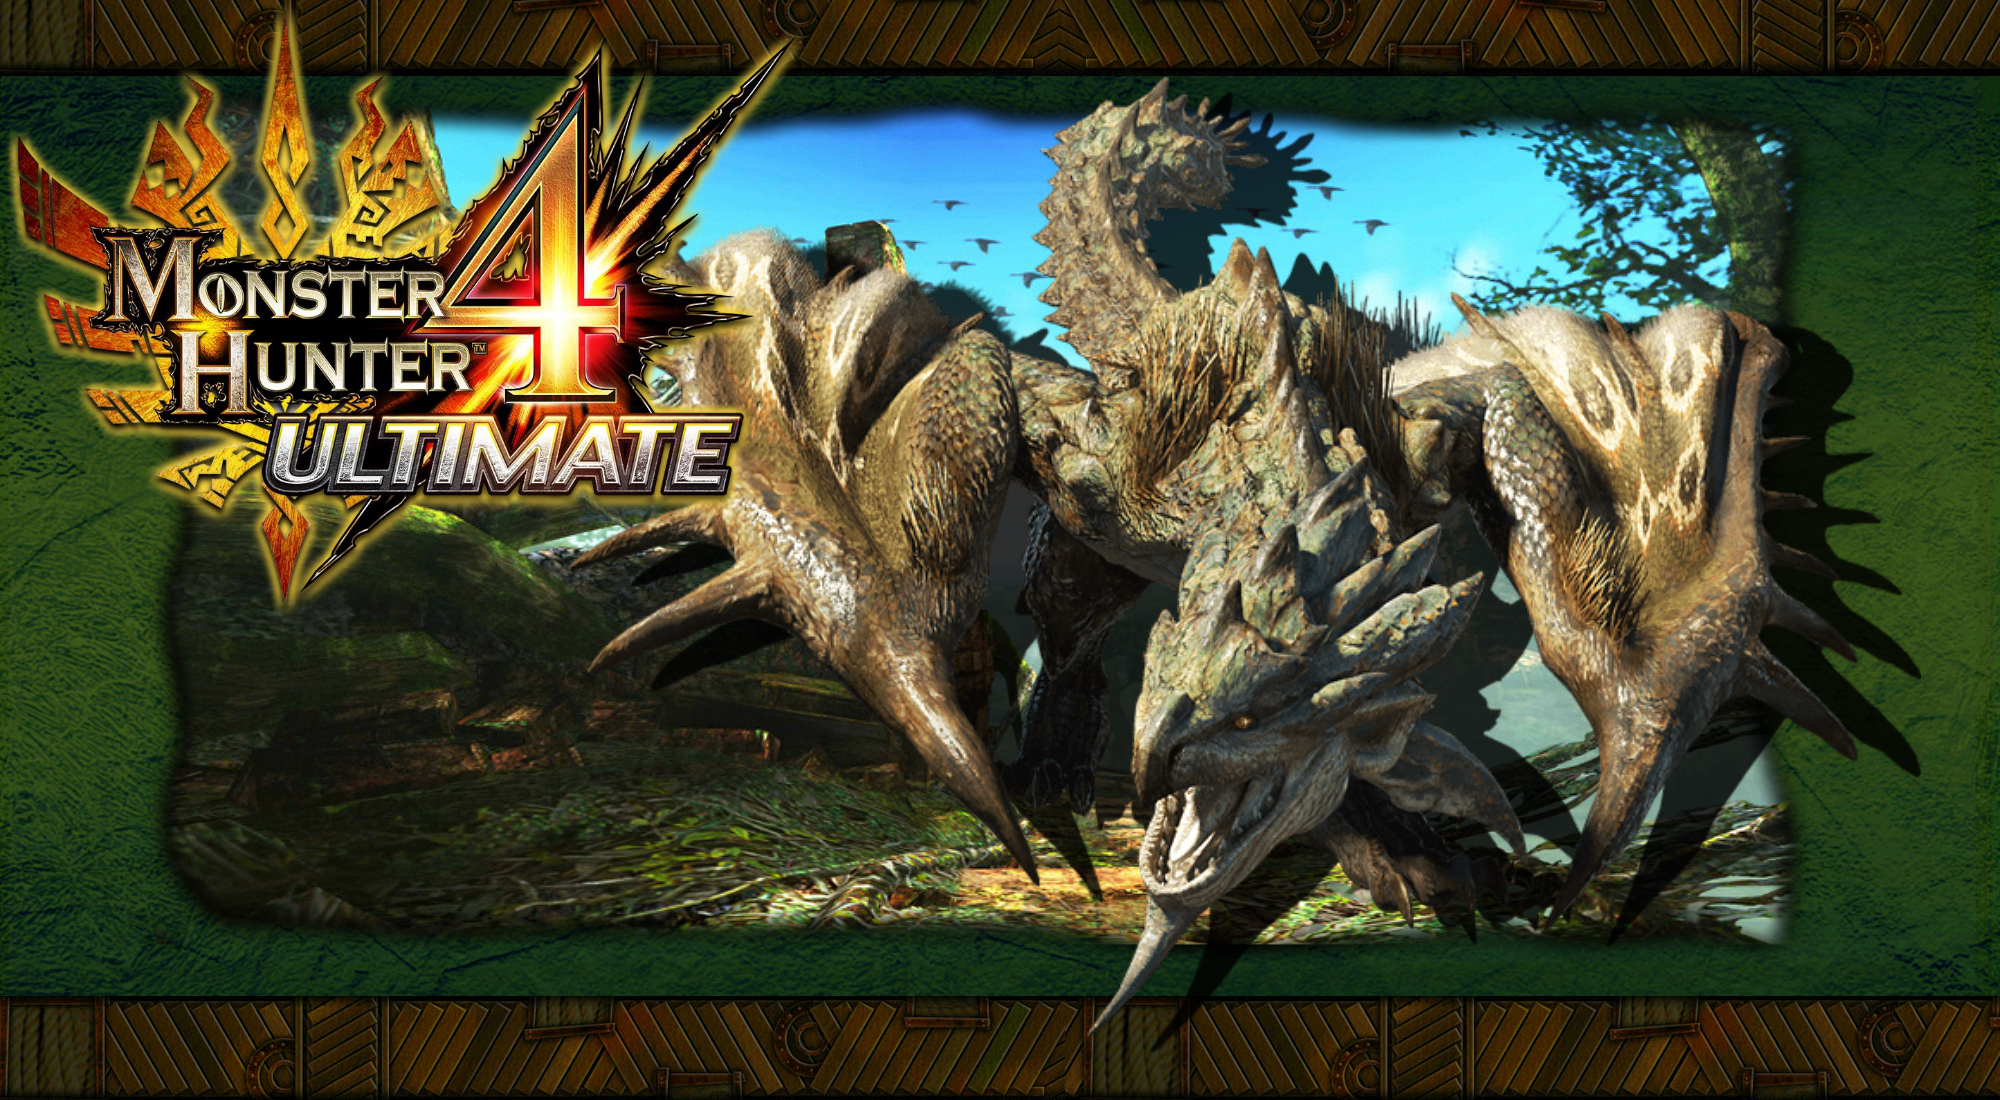 Free Download Monster Hunter 4 Ultimate Rathian Wallpaper By